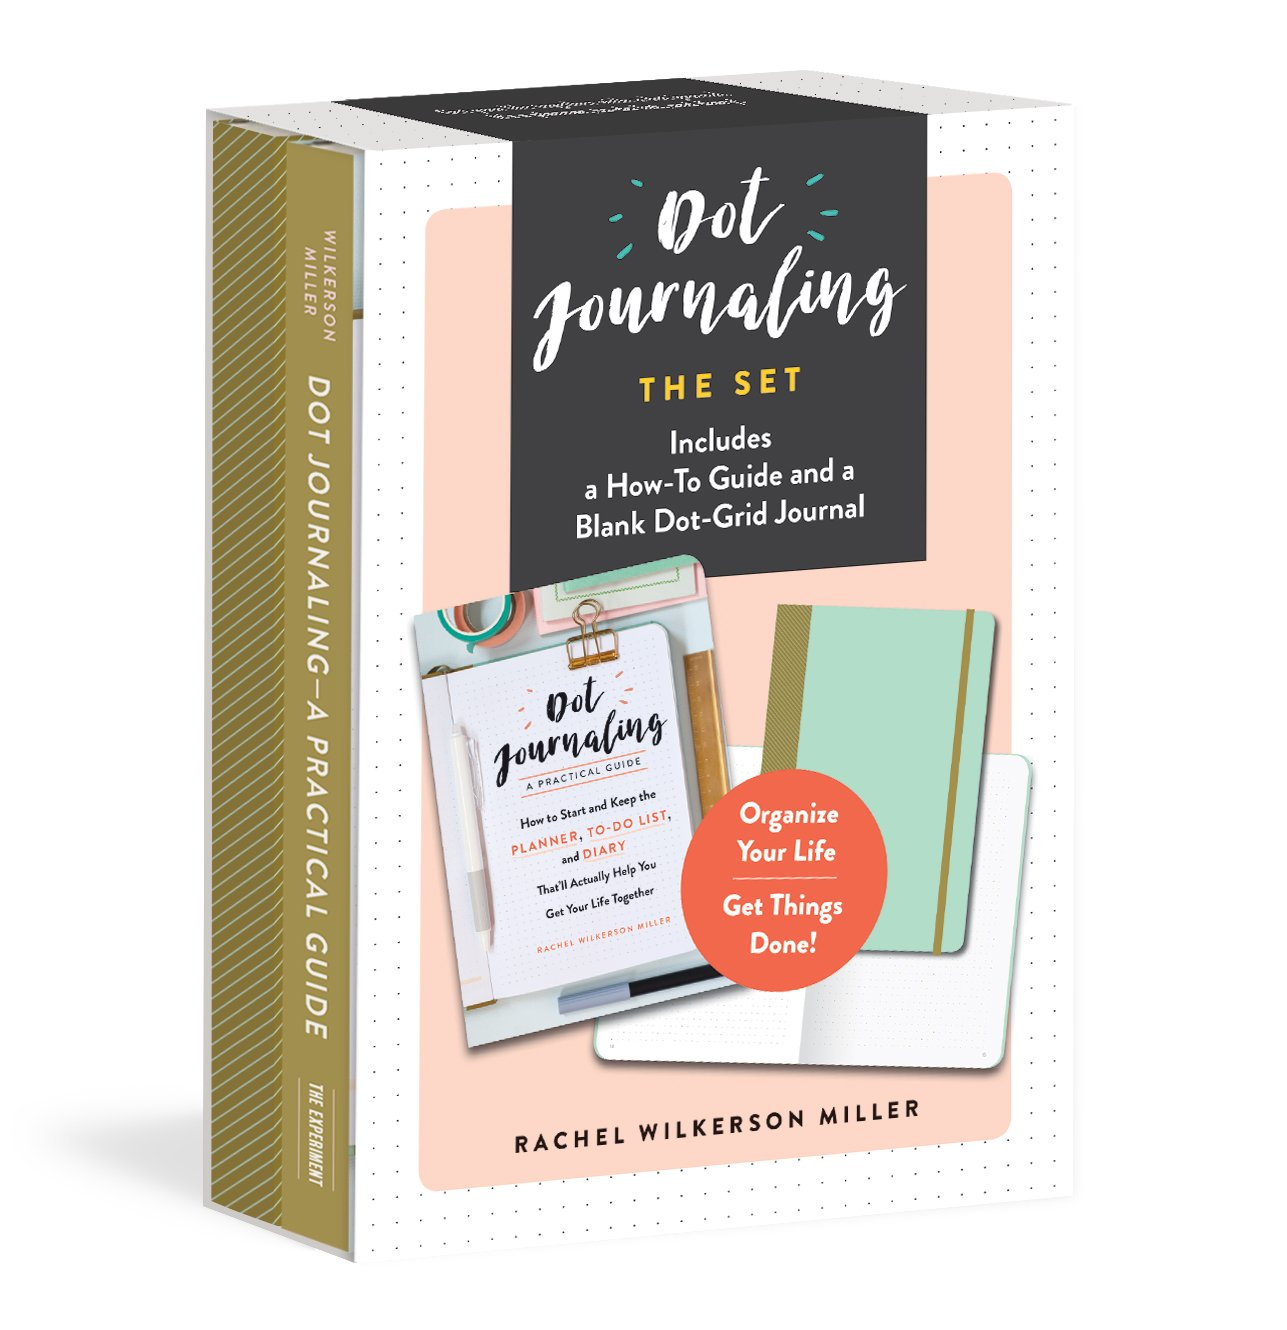 Amazon.com: Dot Journaling―The Set: Includes a How-To Guide ...